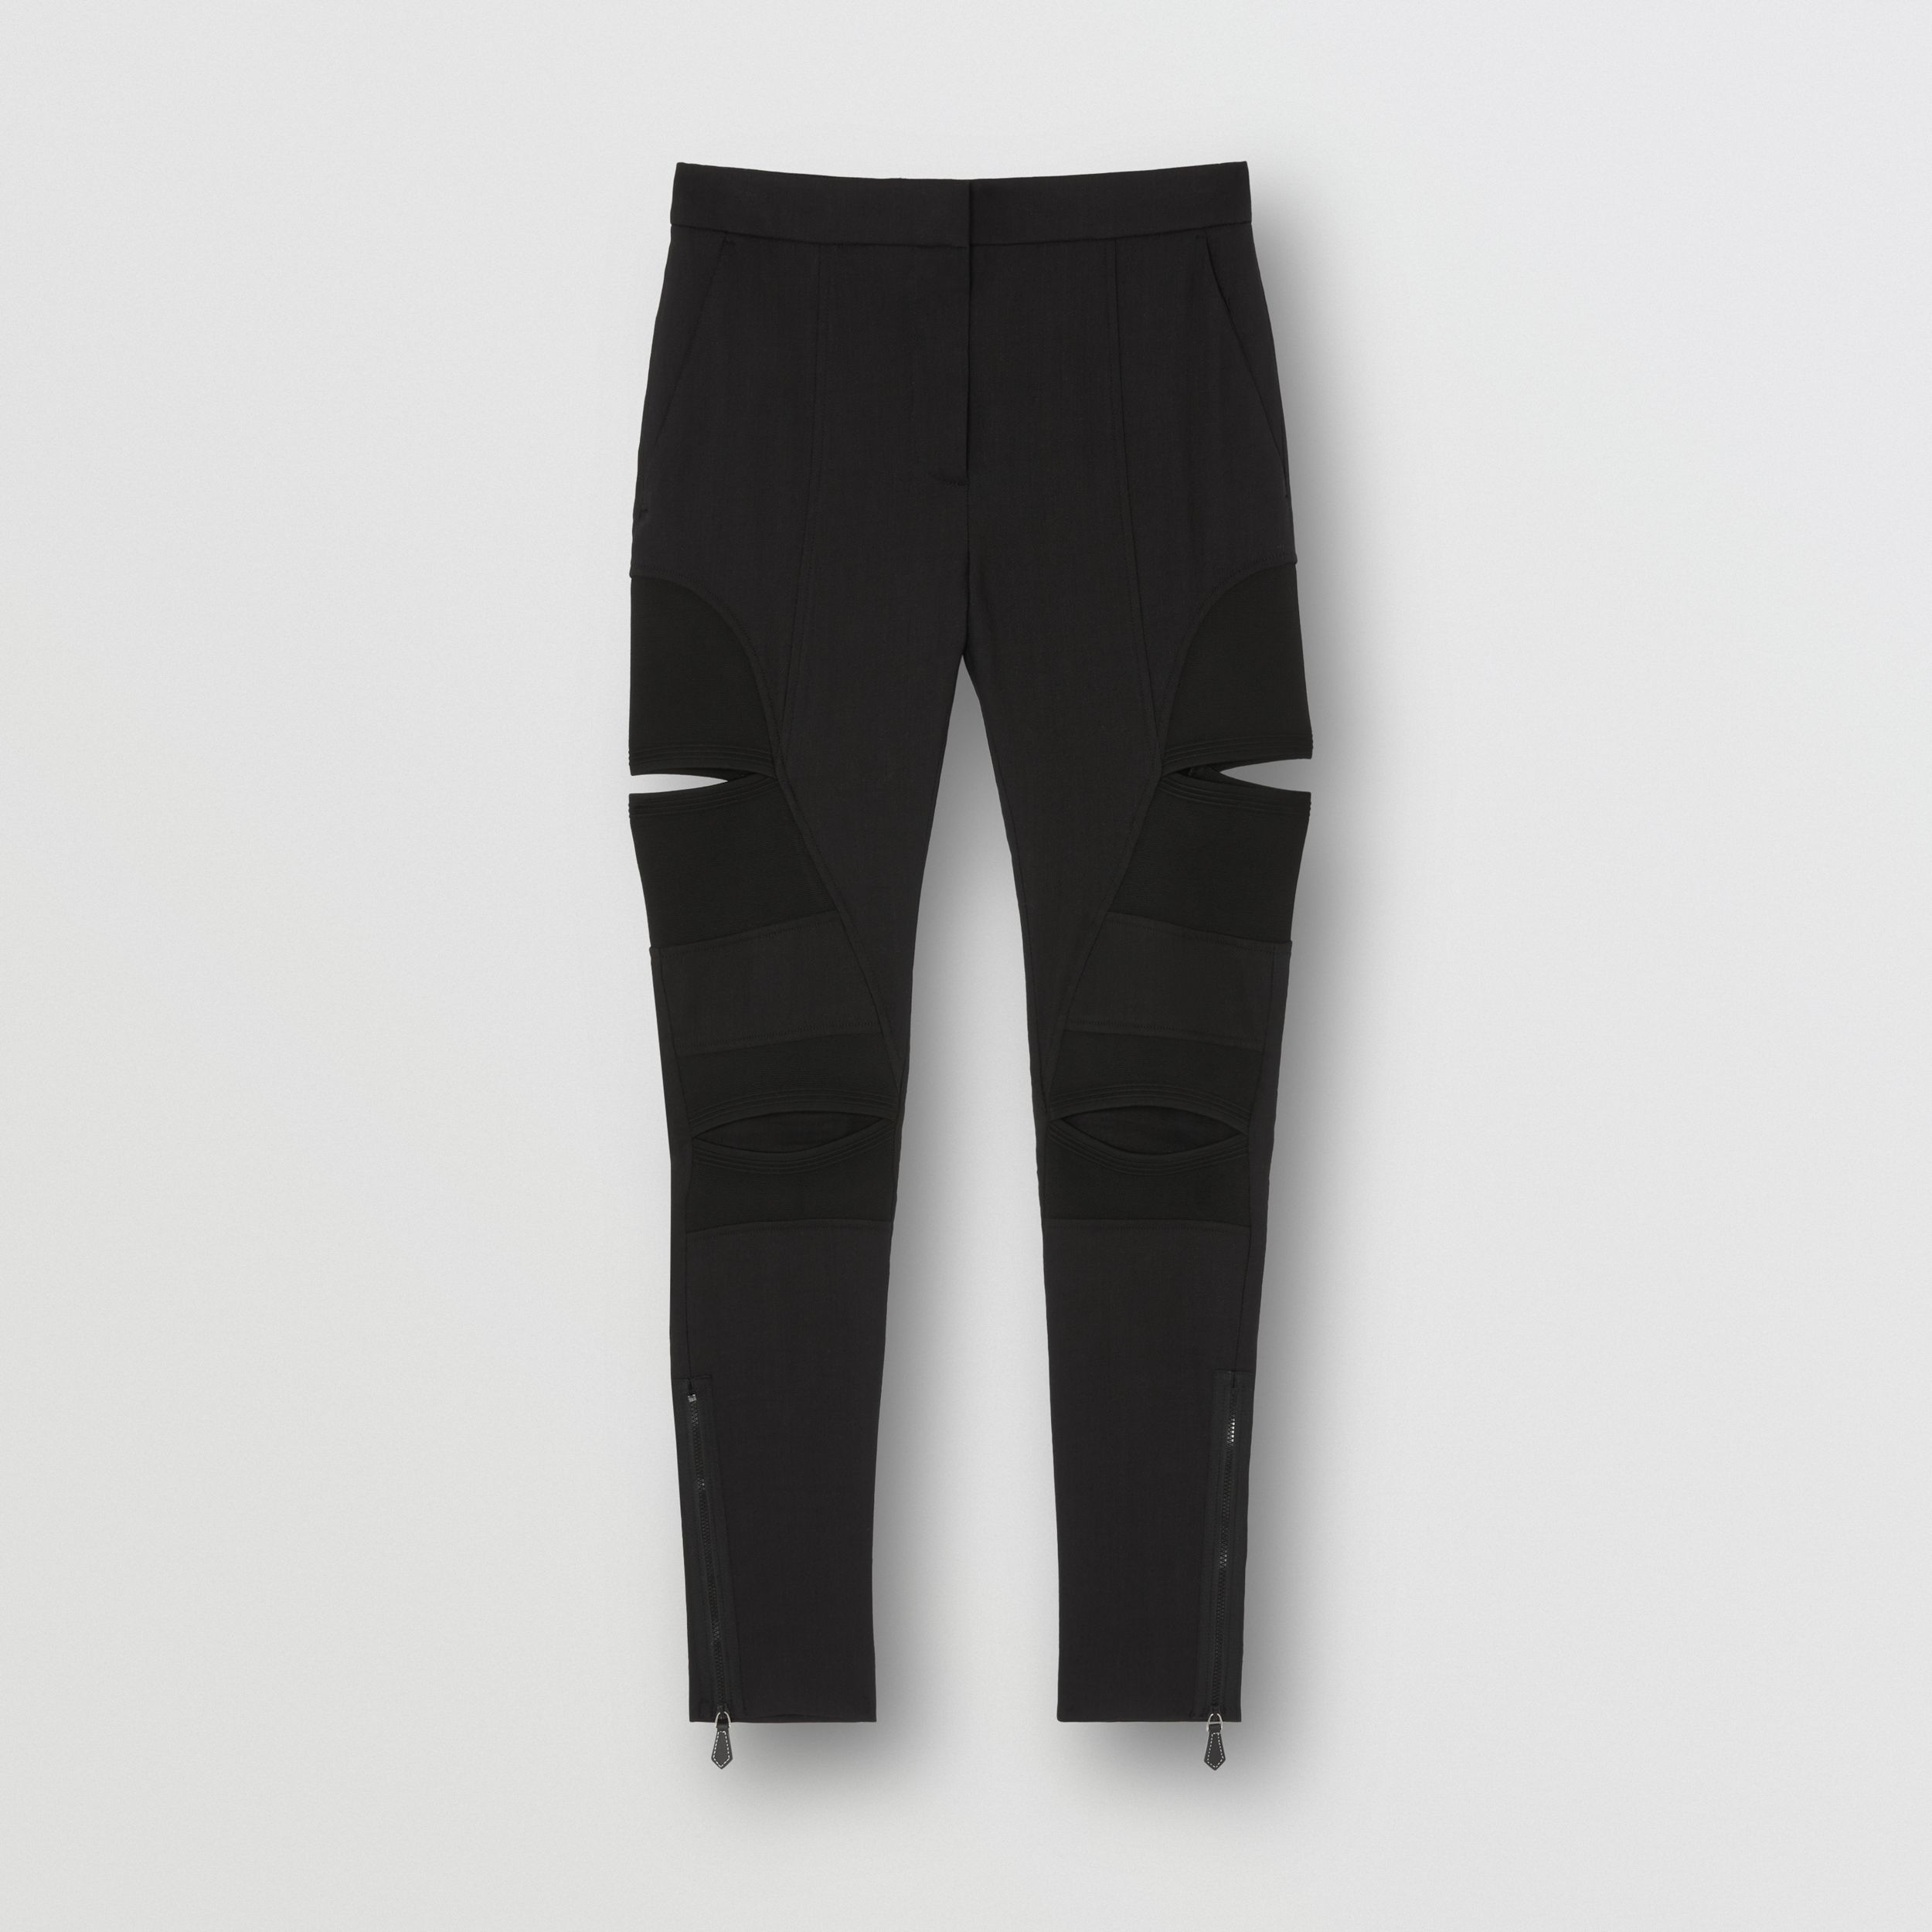 Cut-out Panel Technical Twill Skinny Fit Trousers in Black - Women | Burberry - 4